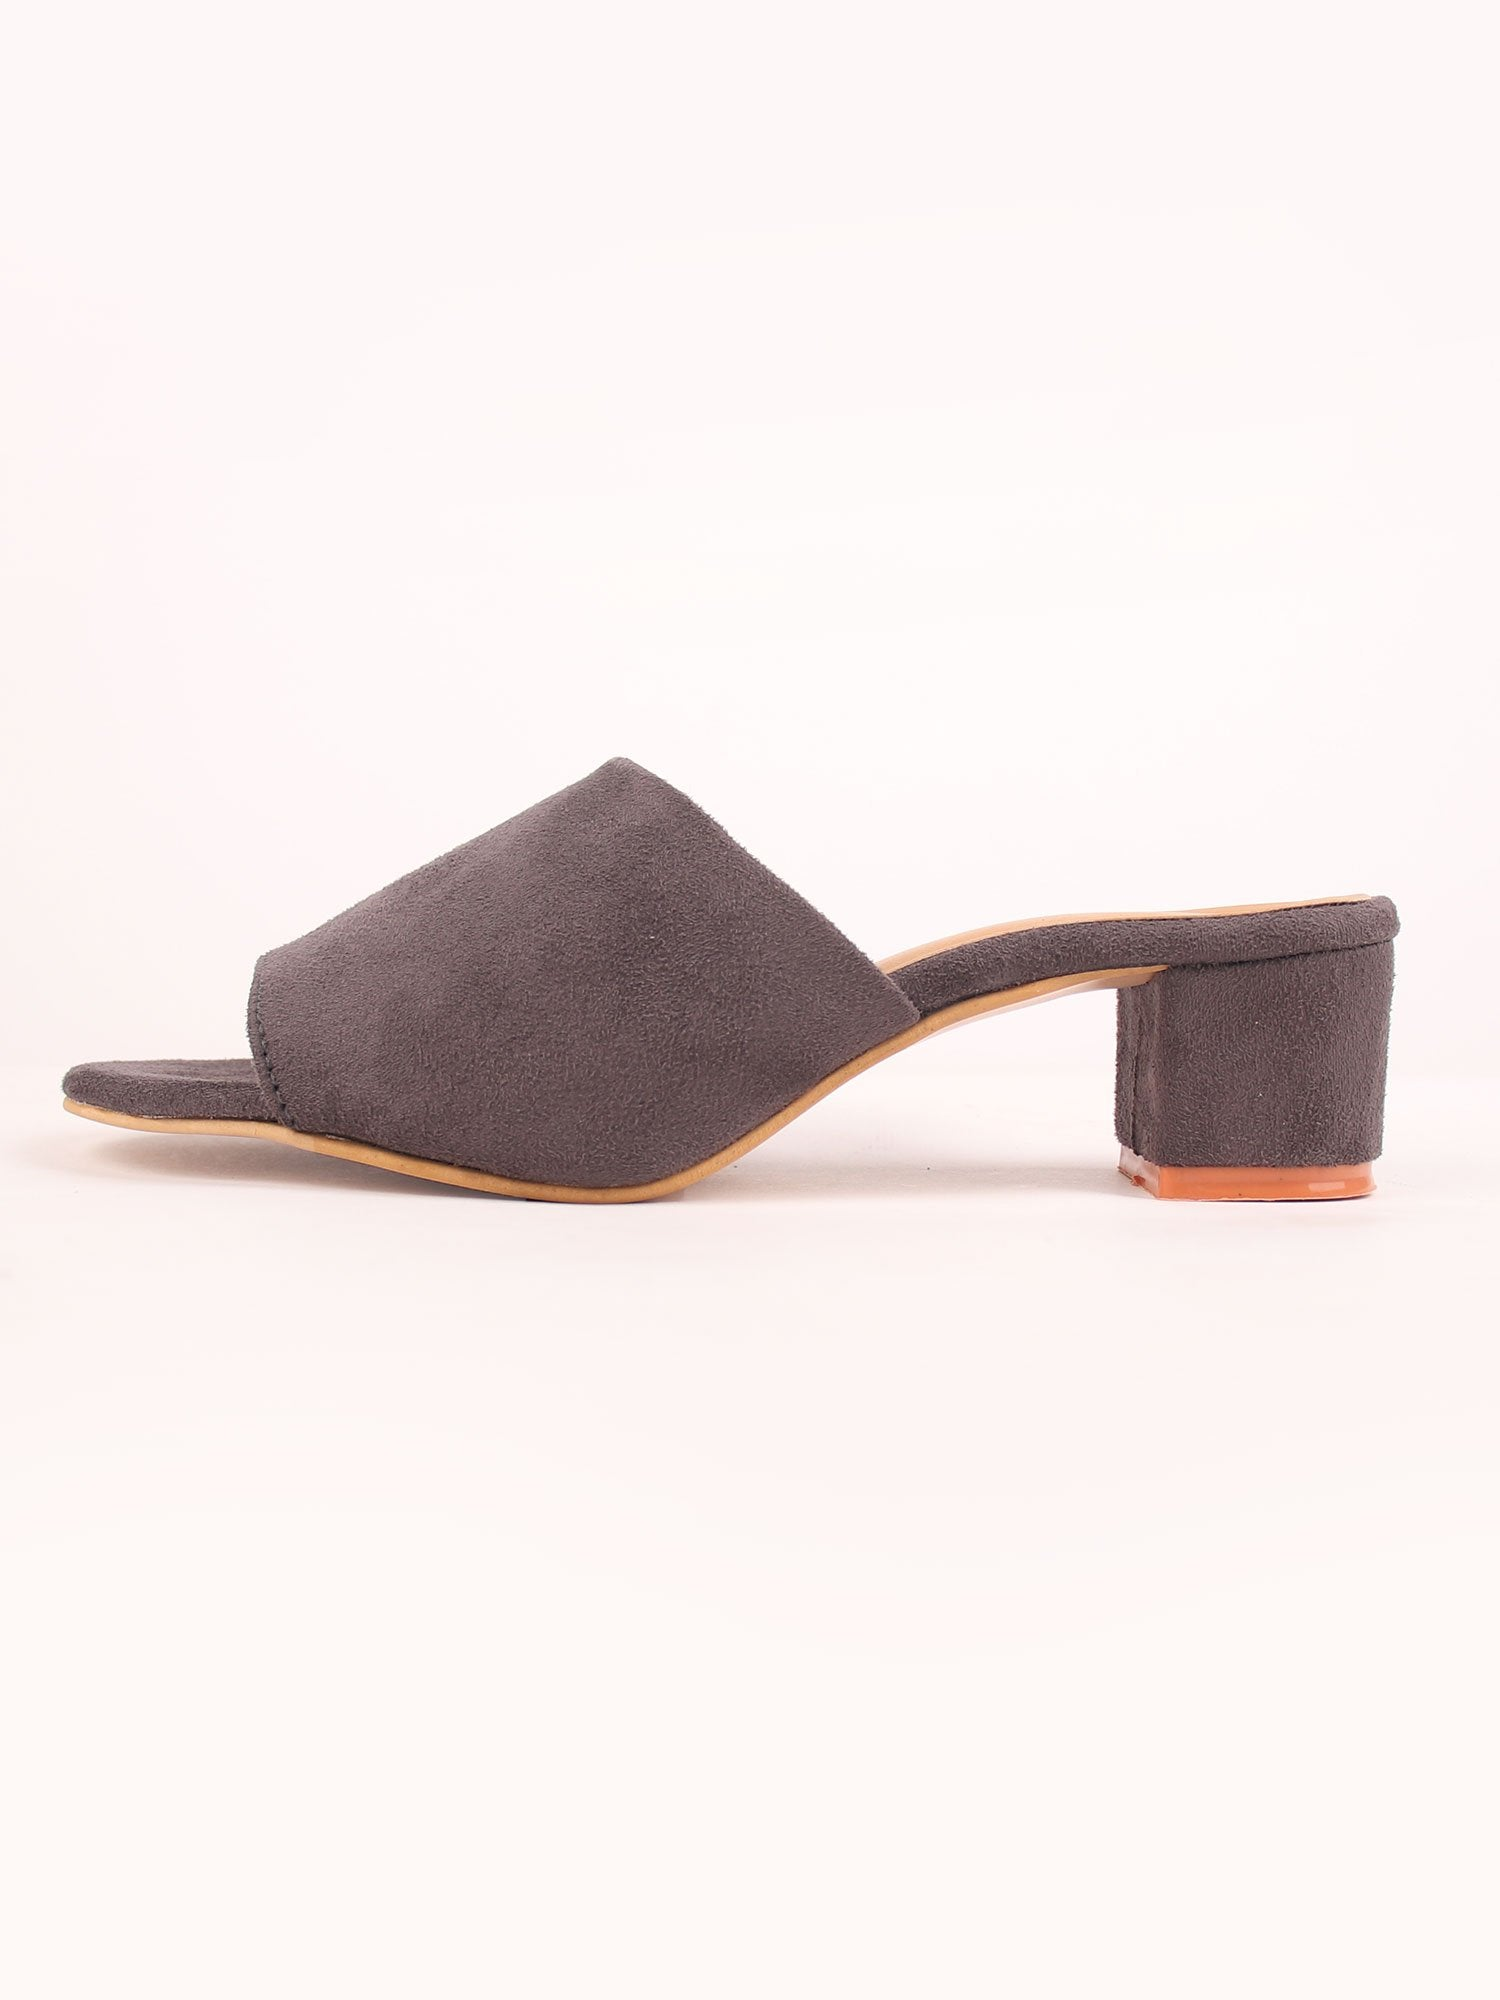 COSMO BLOCK HEELS IN DARK GRAY